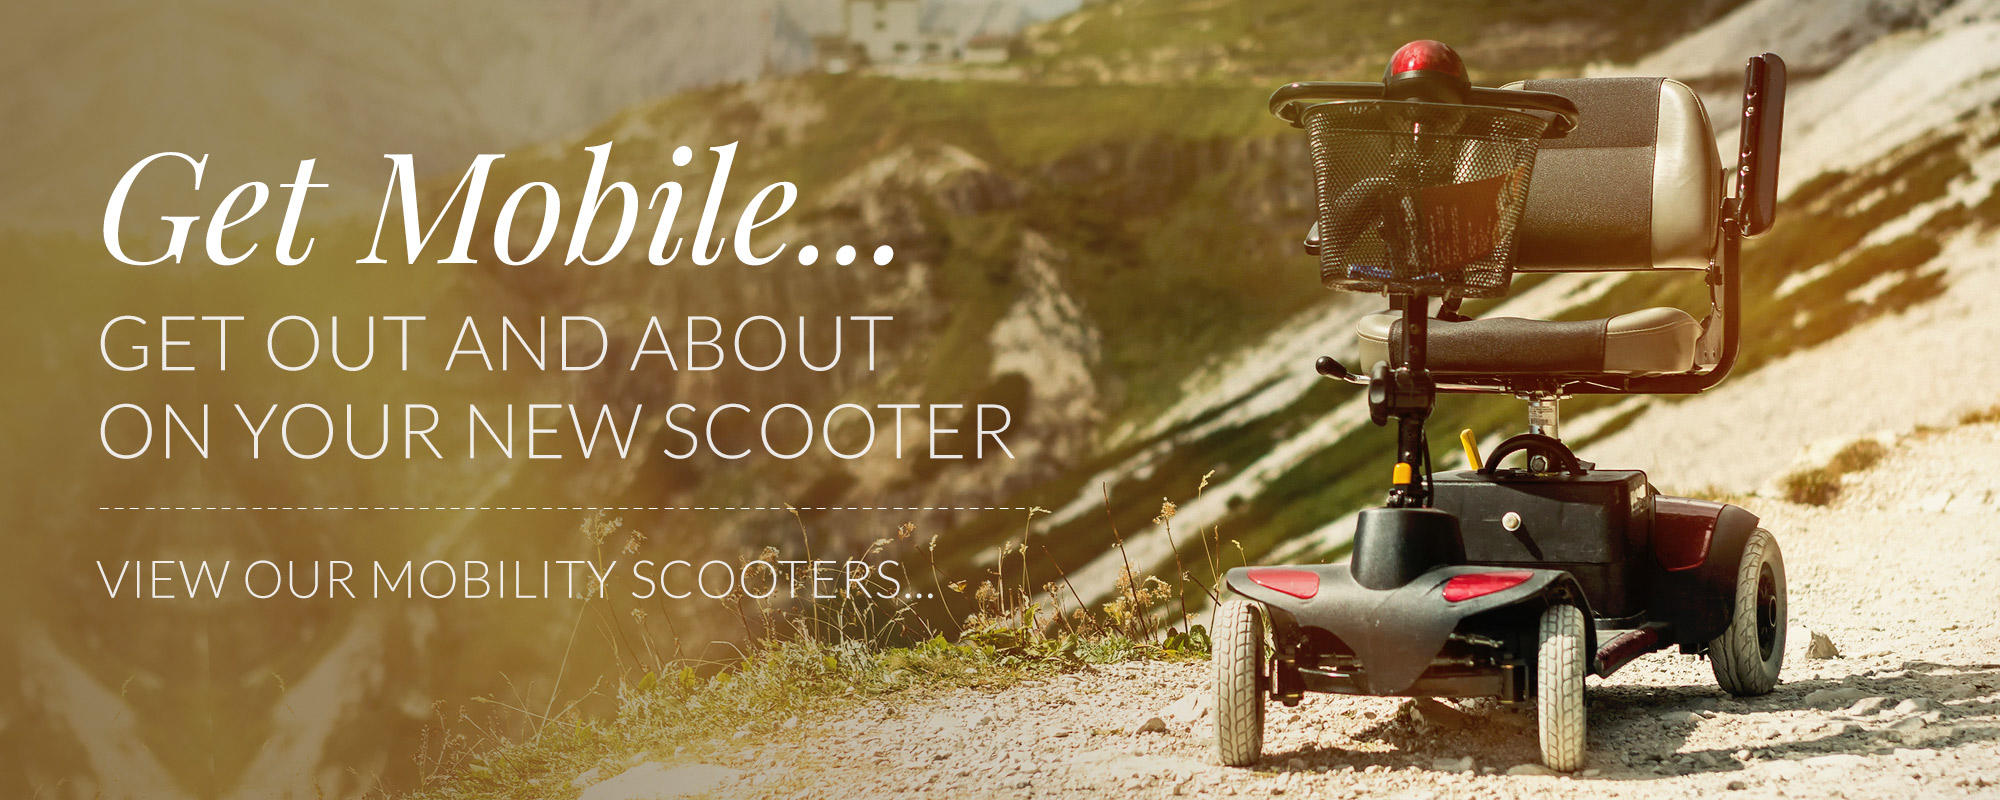 Sussex Mobility Scooters & Accessories